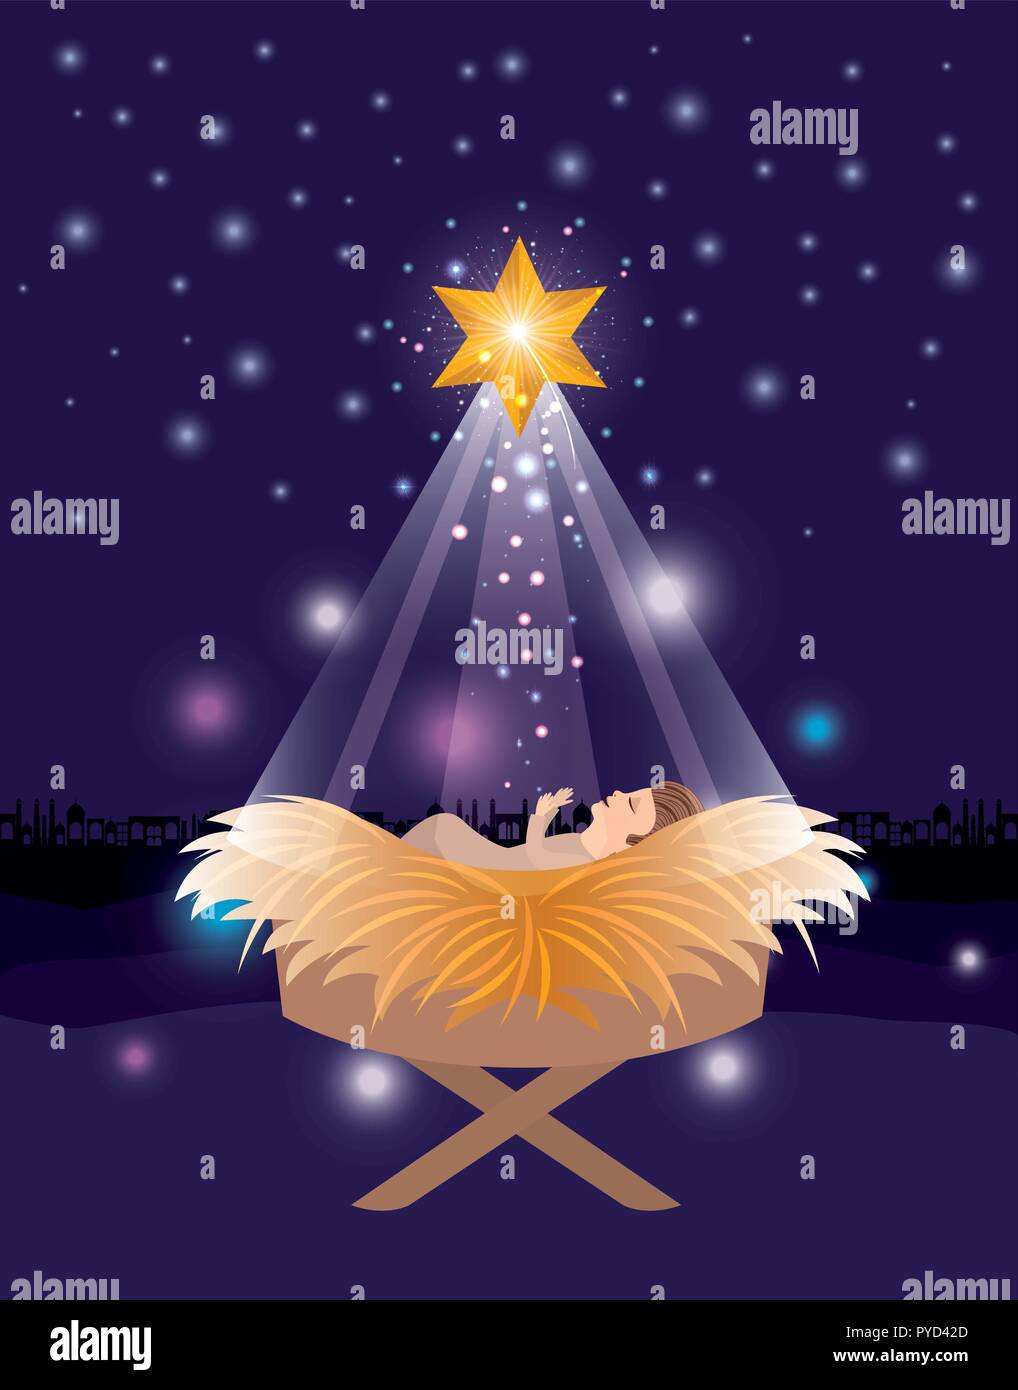 merry christmas card with jesus baby Stock Vector Art & Illustration ...